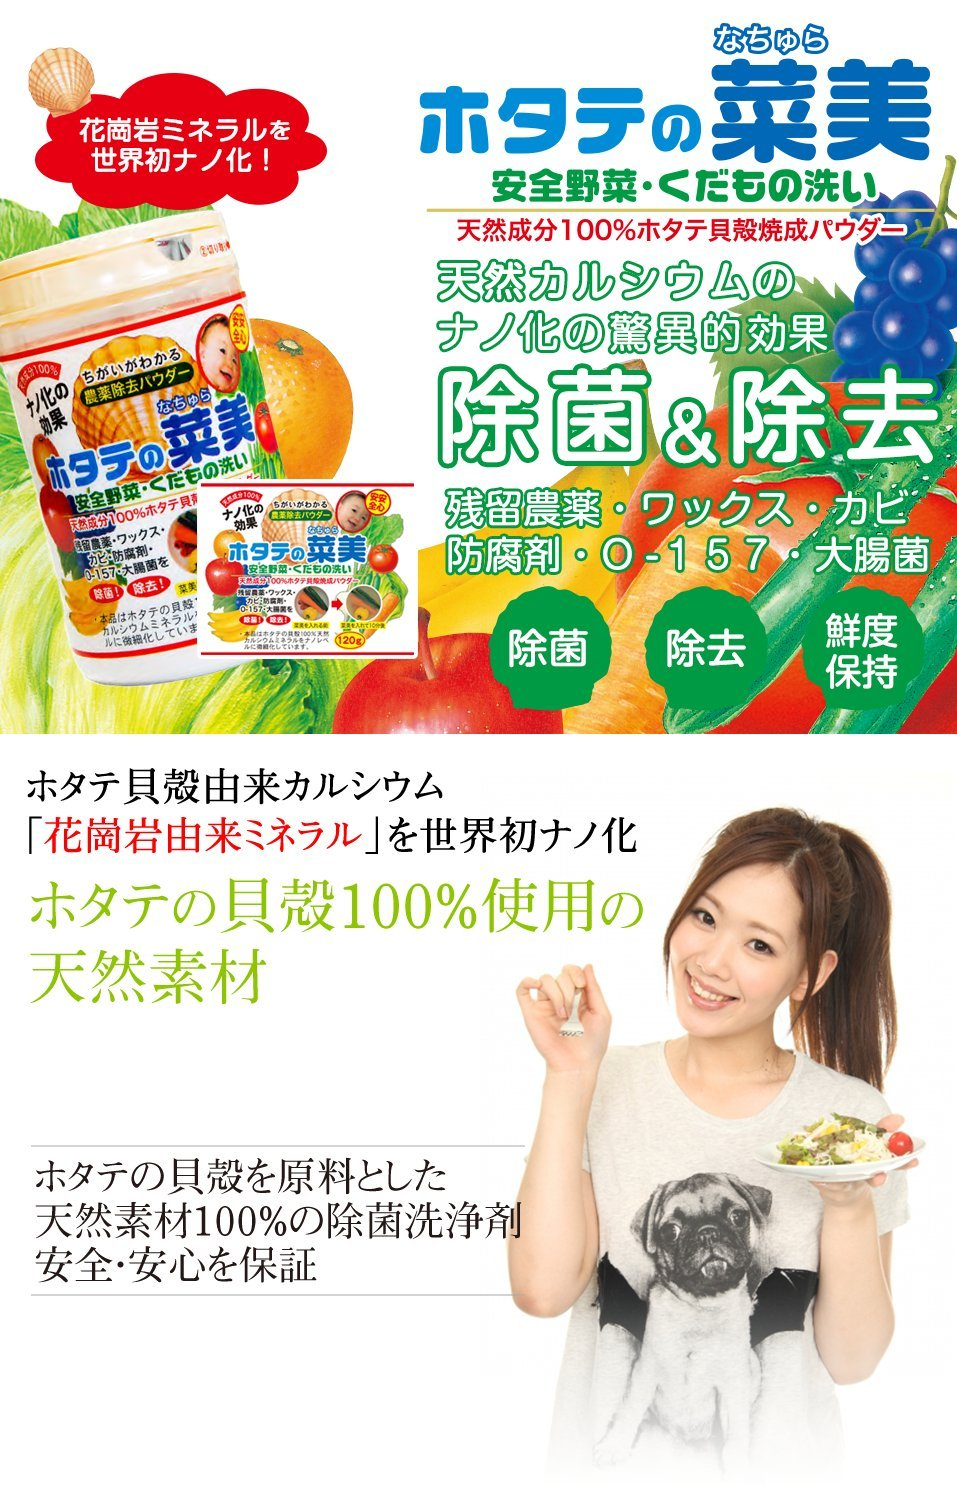 Hotate no nachura natural cleanser/detergent for Fruits, Vegetable, and Rice etc Made of 100% natural shell powder. Perfect Organic Detergent. Japanese technology is patented in World's first. (1)